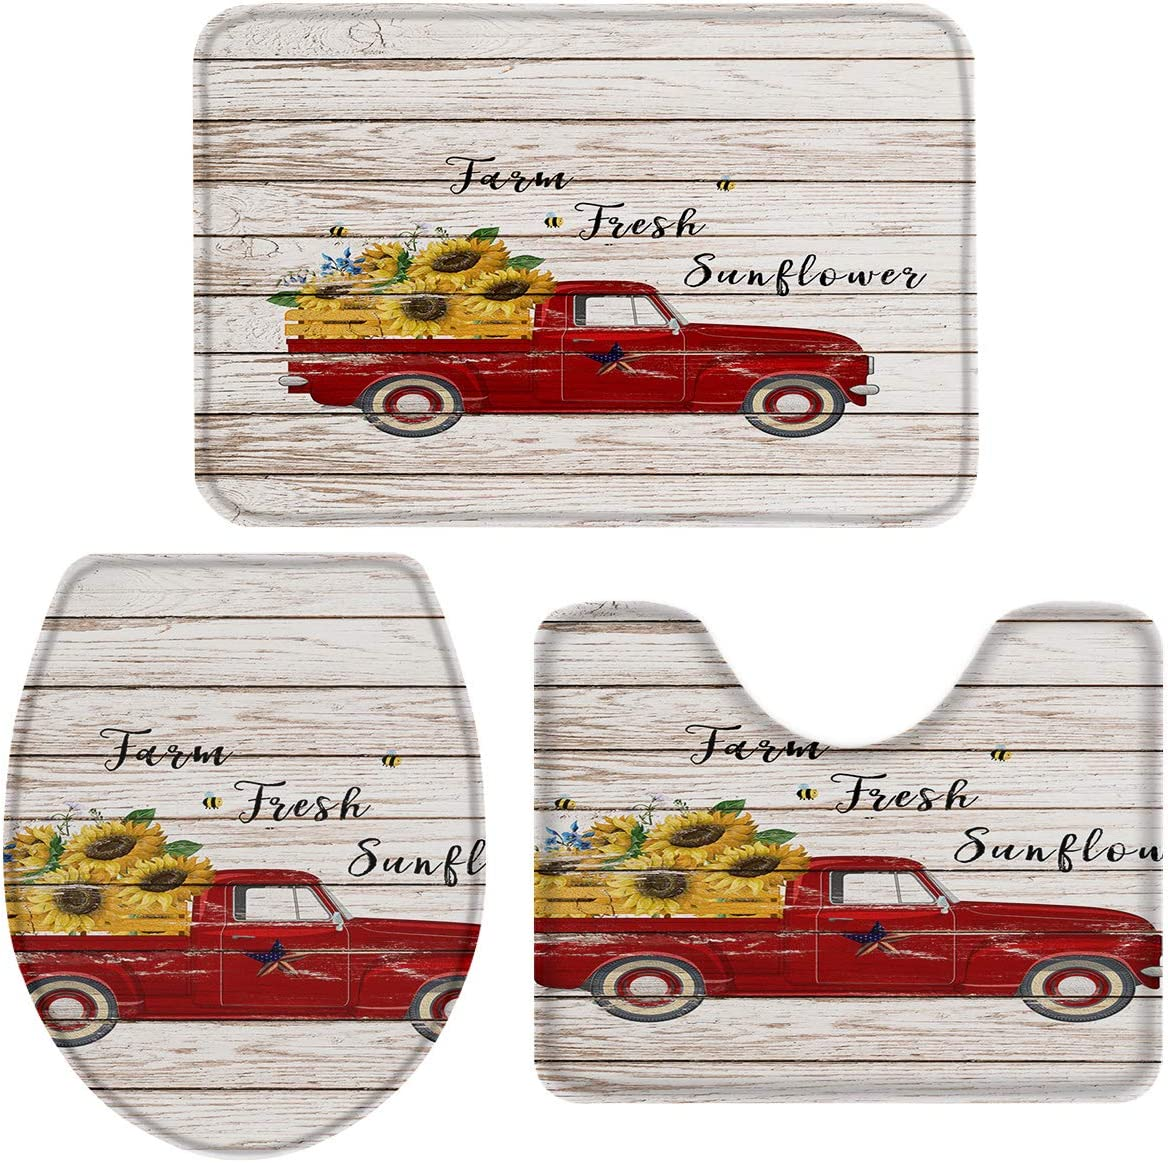 OneHoney 3-Piece Bath Rug and Mat Sets, Farm Fresh Sunflowers on Red Truck Non-Slip Bathroom Decor Doormat Runner Rugs, U-Shaped Toilet Floor Mats, Toilet Seat Cover Wooden Plank